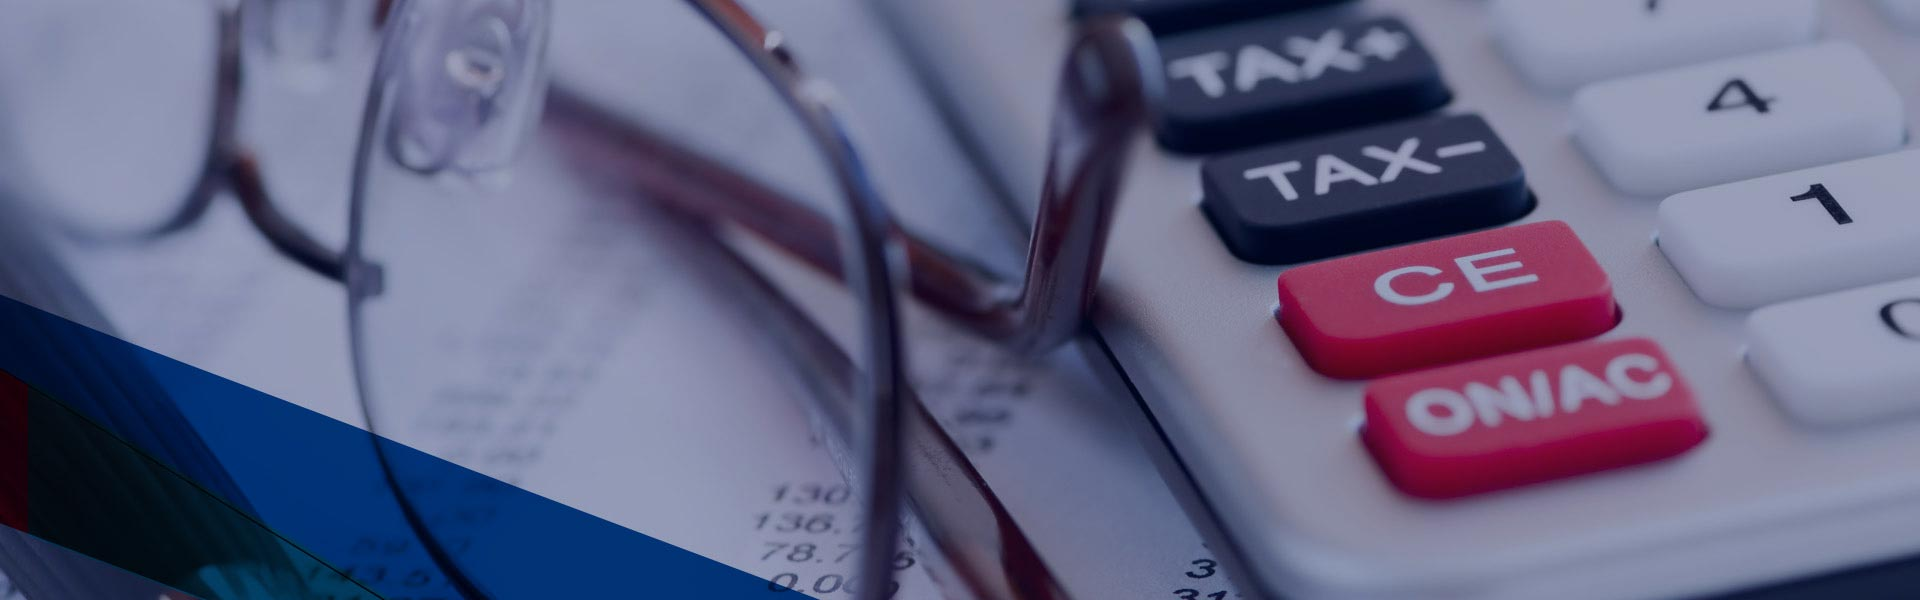 shamu-bookkeeping-personal-tax-services